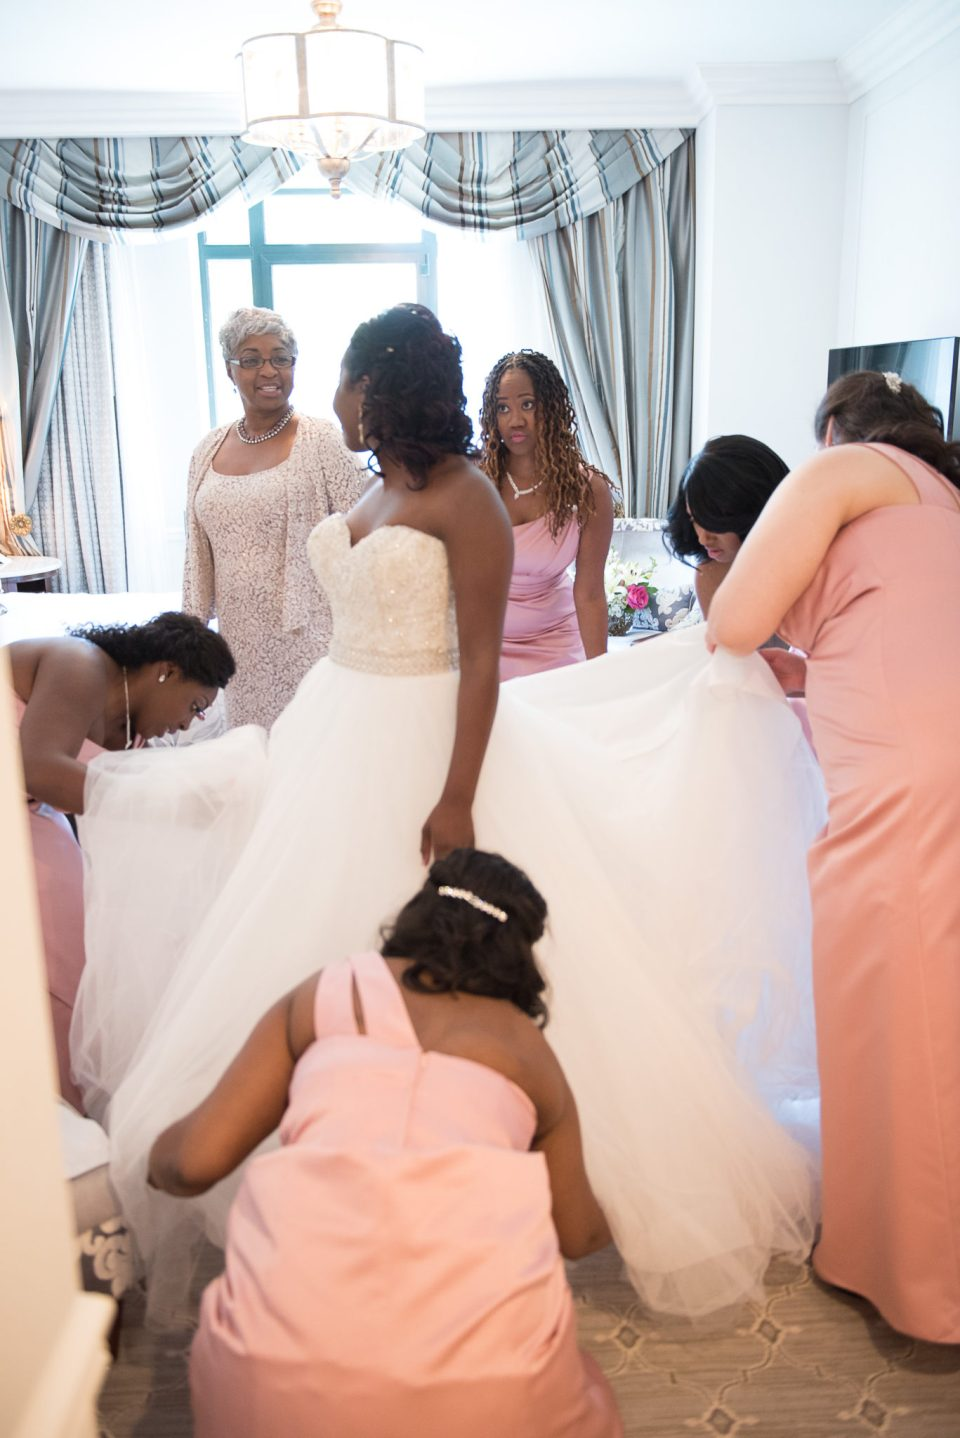 Getting-Dressed-40-of-73-960x1438 Classic Charleston Nuptials